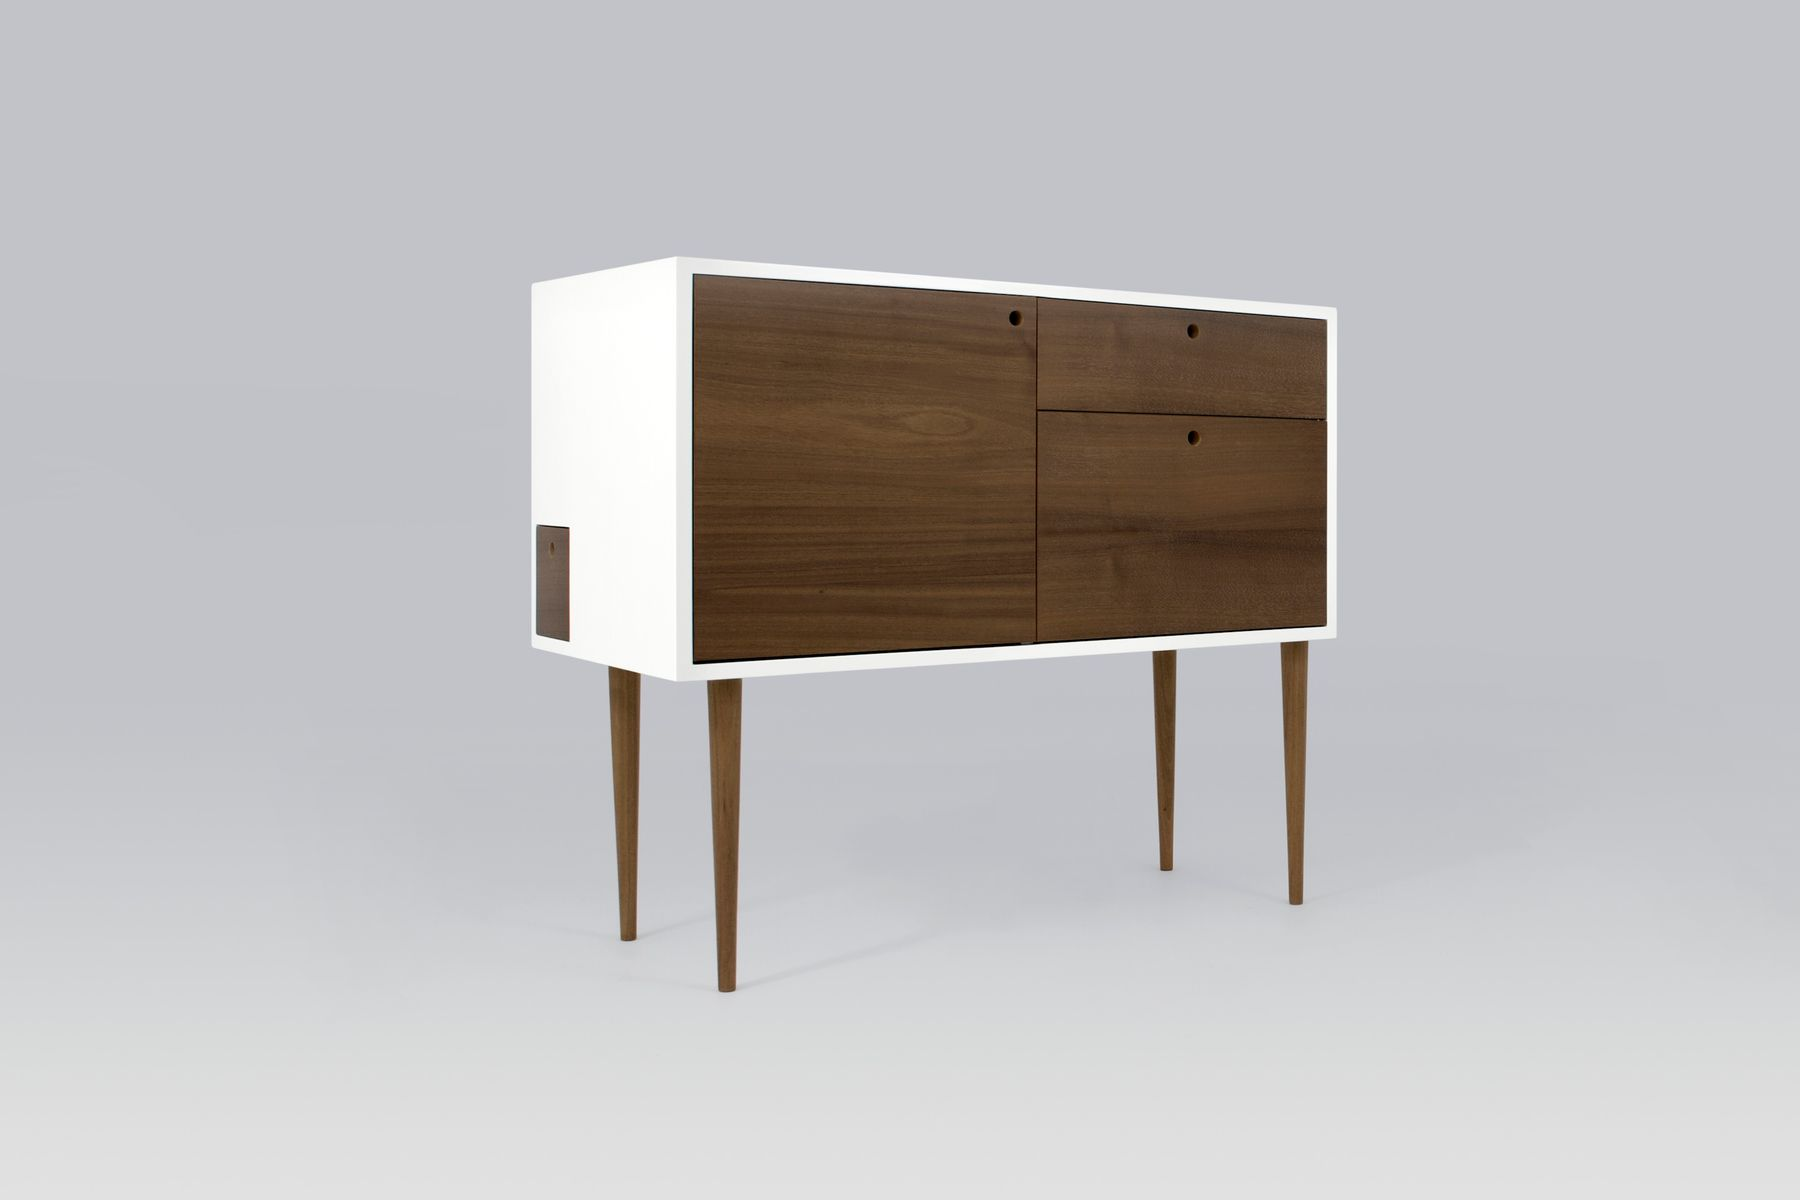 Drfive sideboard by mo ow for sale at pamono